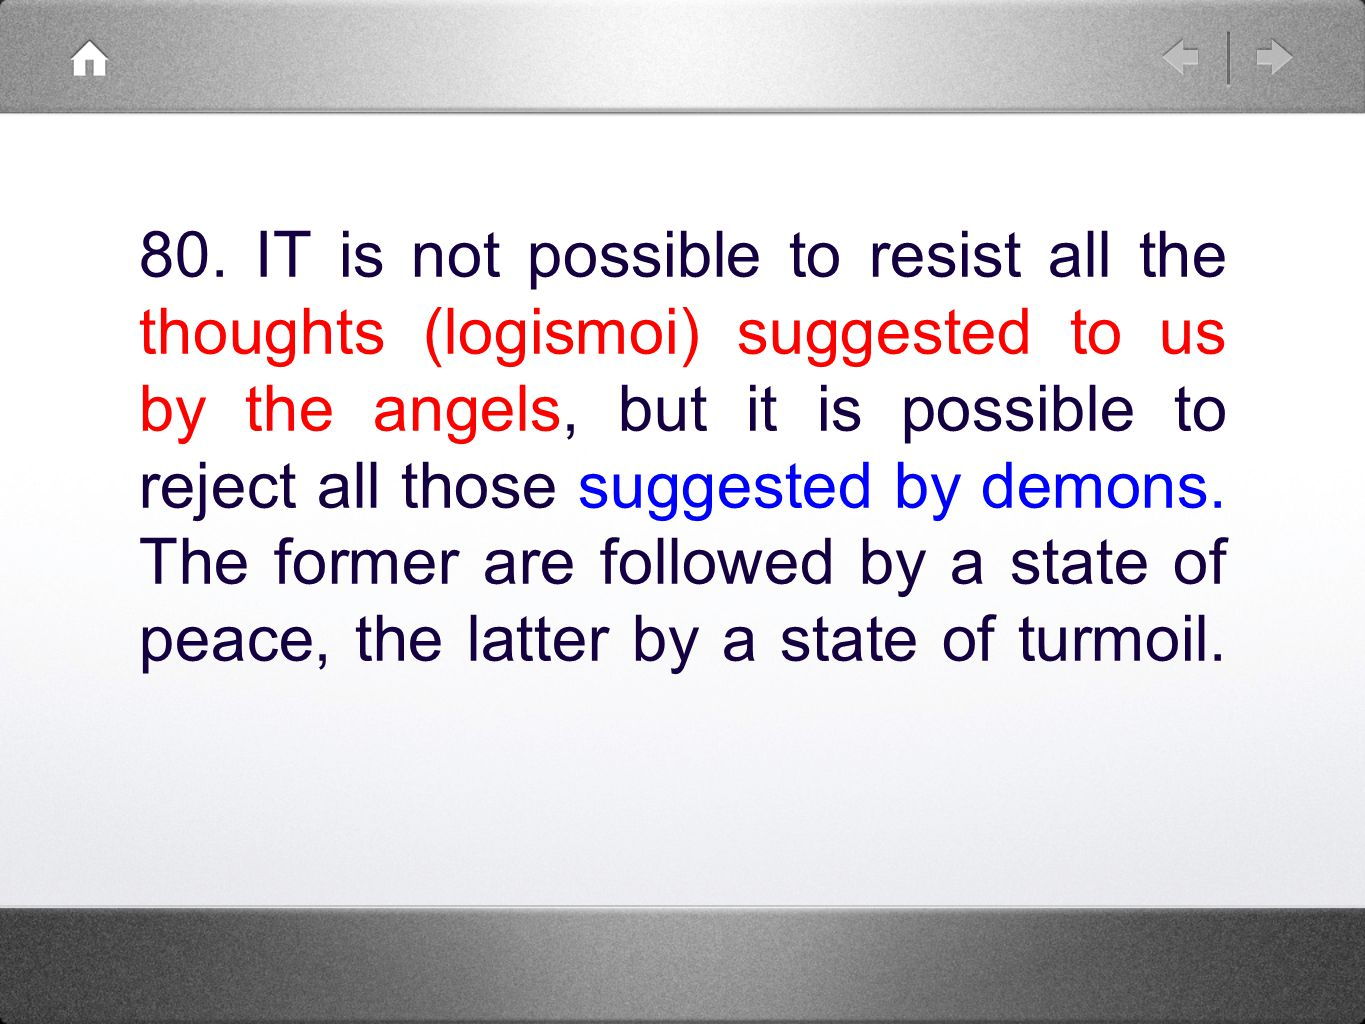 80. IT is not possible to resist all the thoughts (logismoi) suggested to us by the angels, but it is possible to reject all those suggested by demons